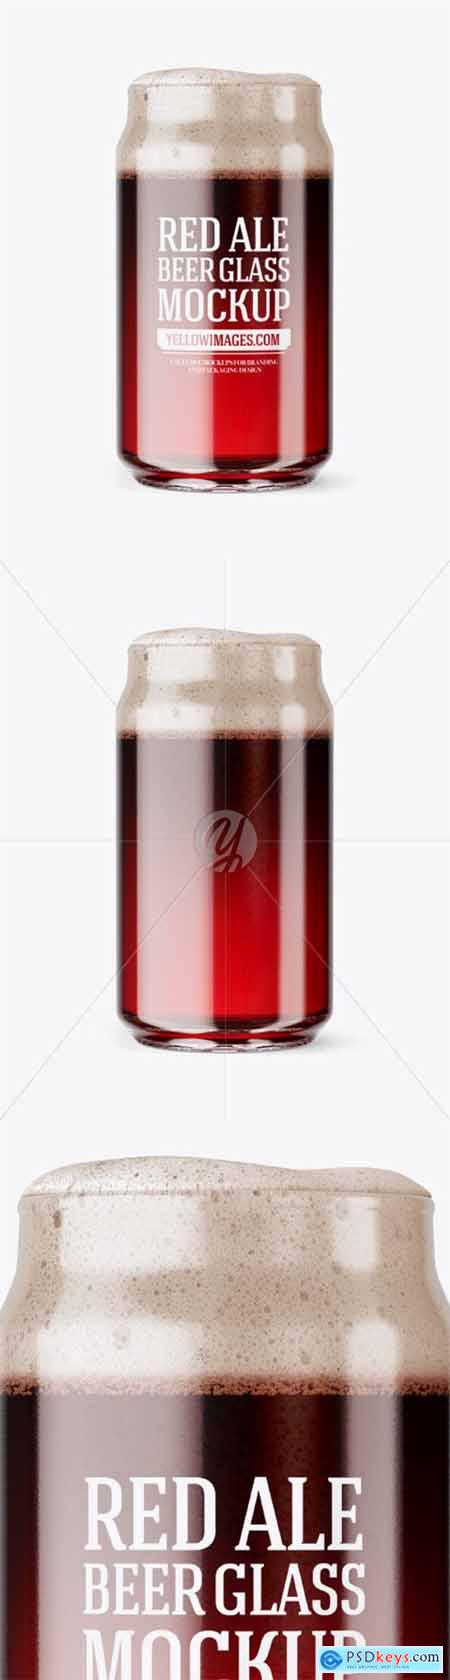 Can Shaped Glass Cup w- Red Ale Mockup 51133